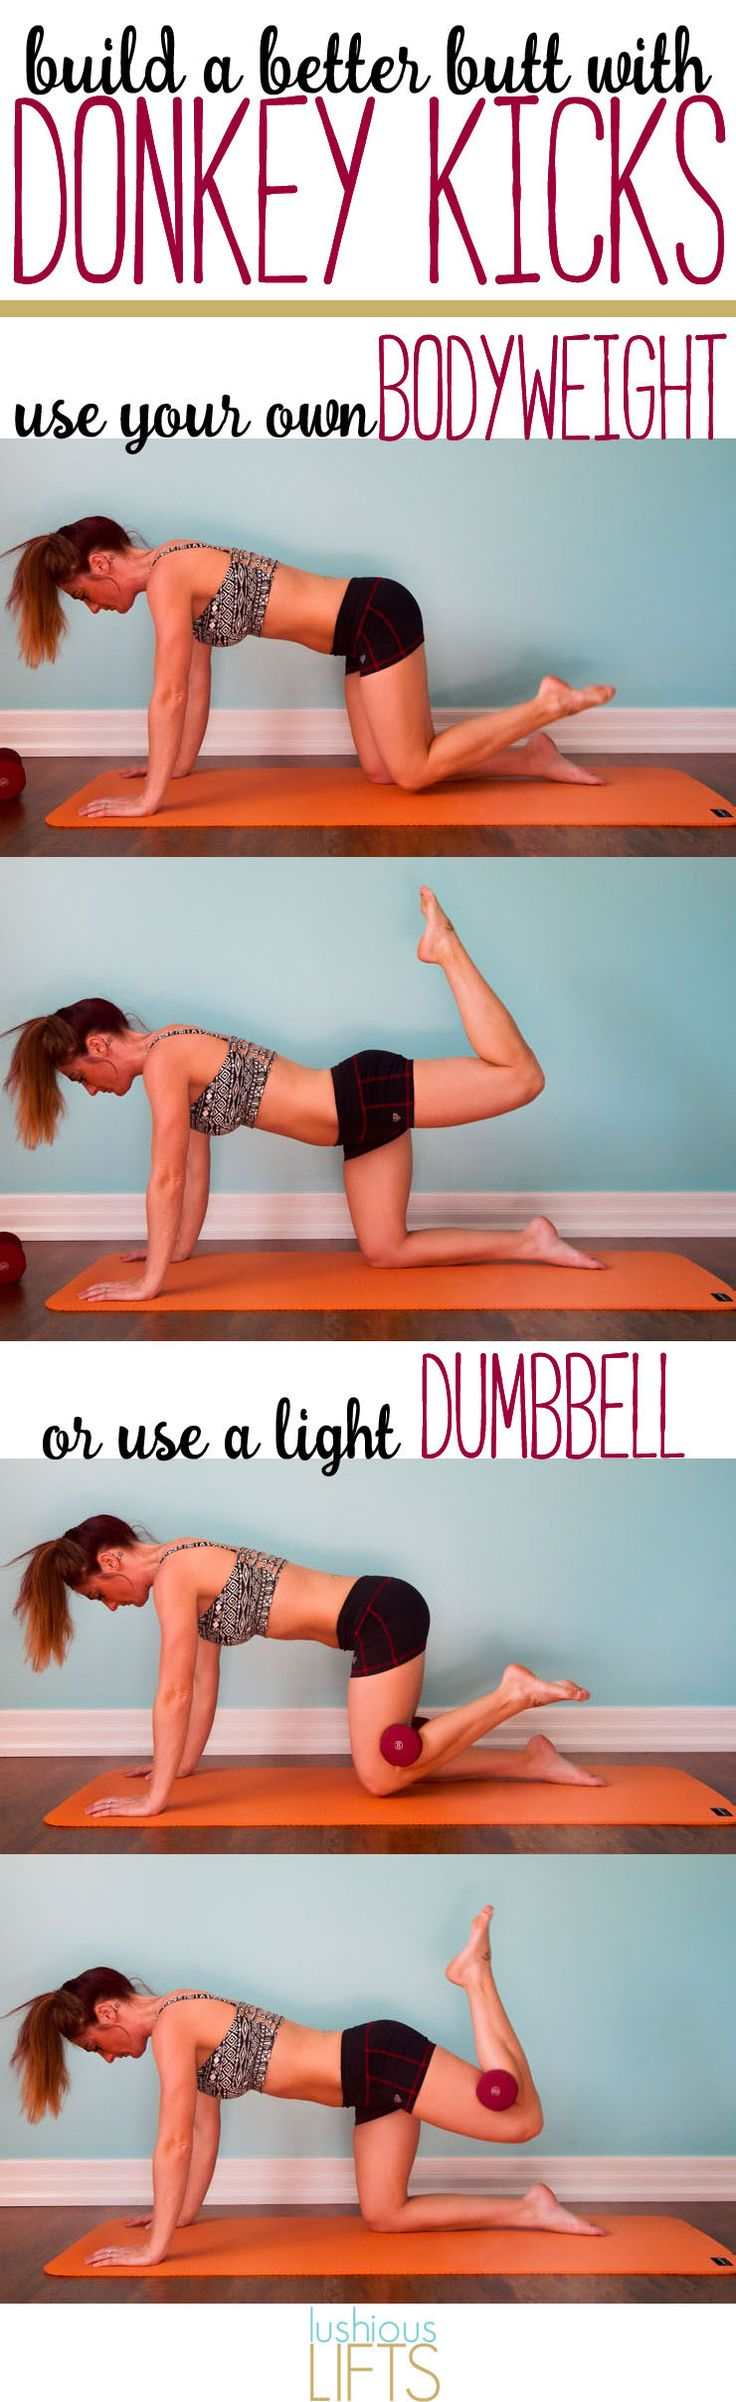 Build a Better Butt with Donkey Kicks || lushiouslifts.com